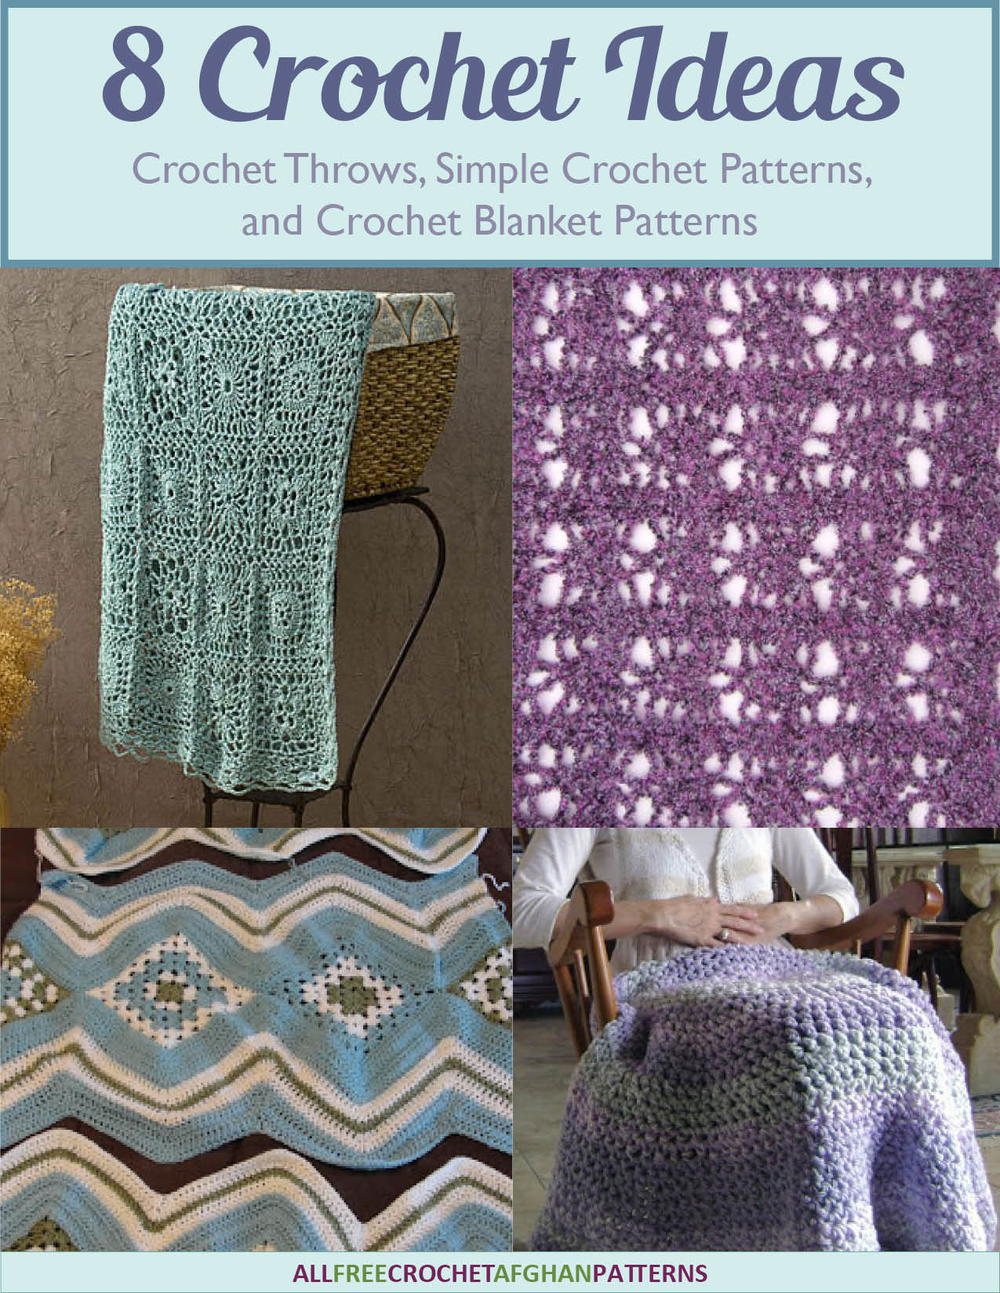 8 Crochet Ideas For Crochet Throws Simple Crochet